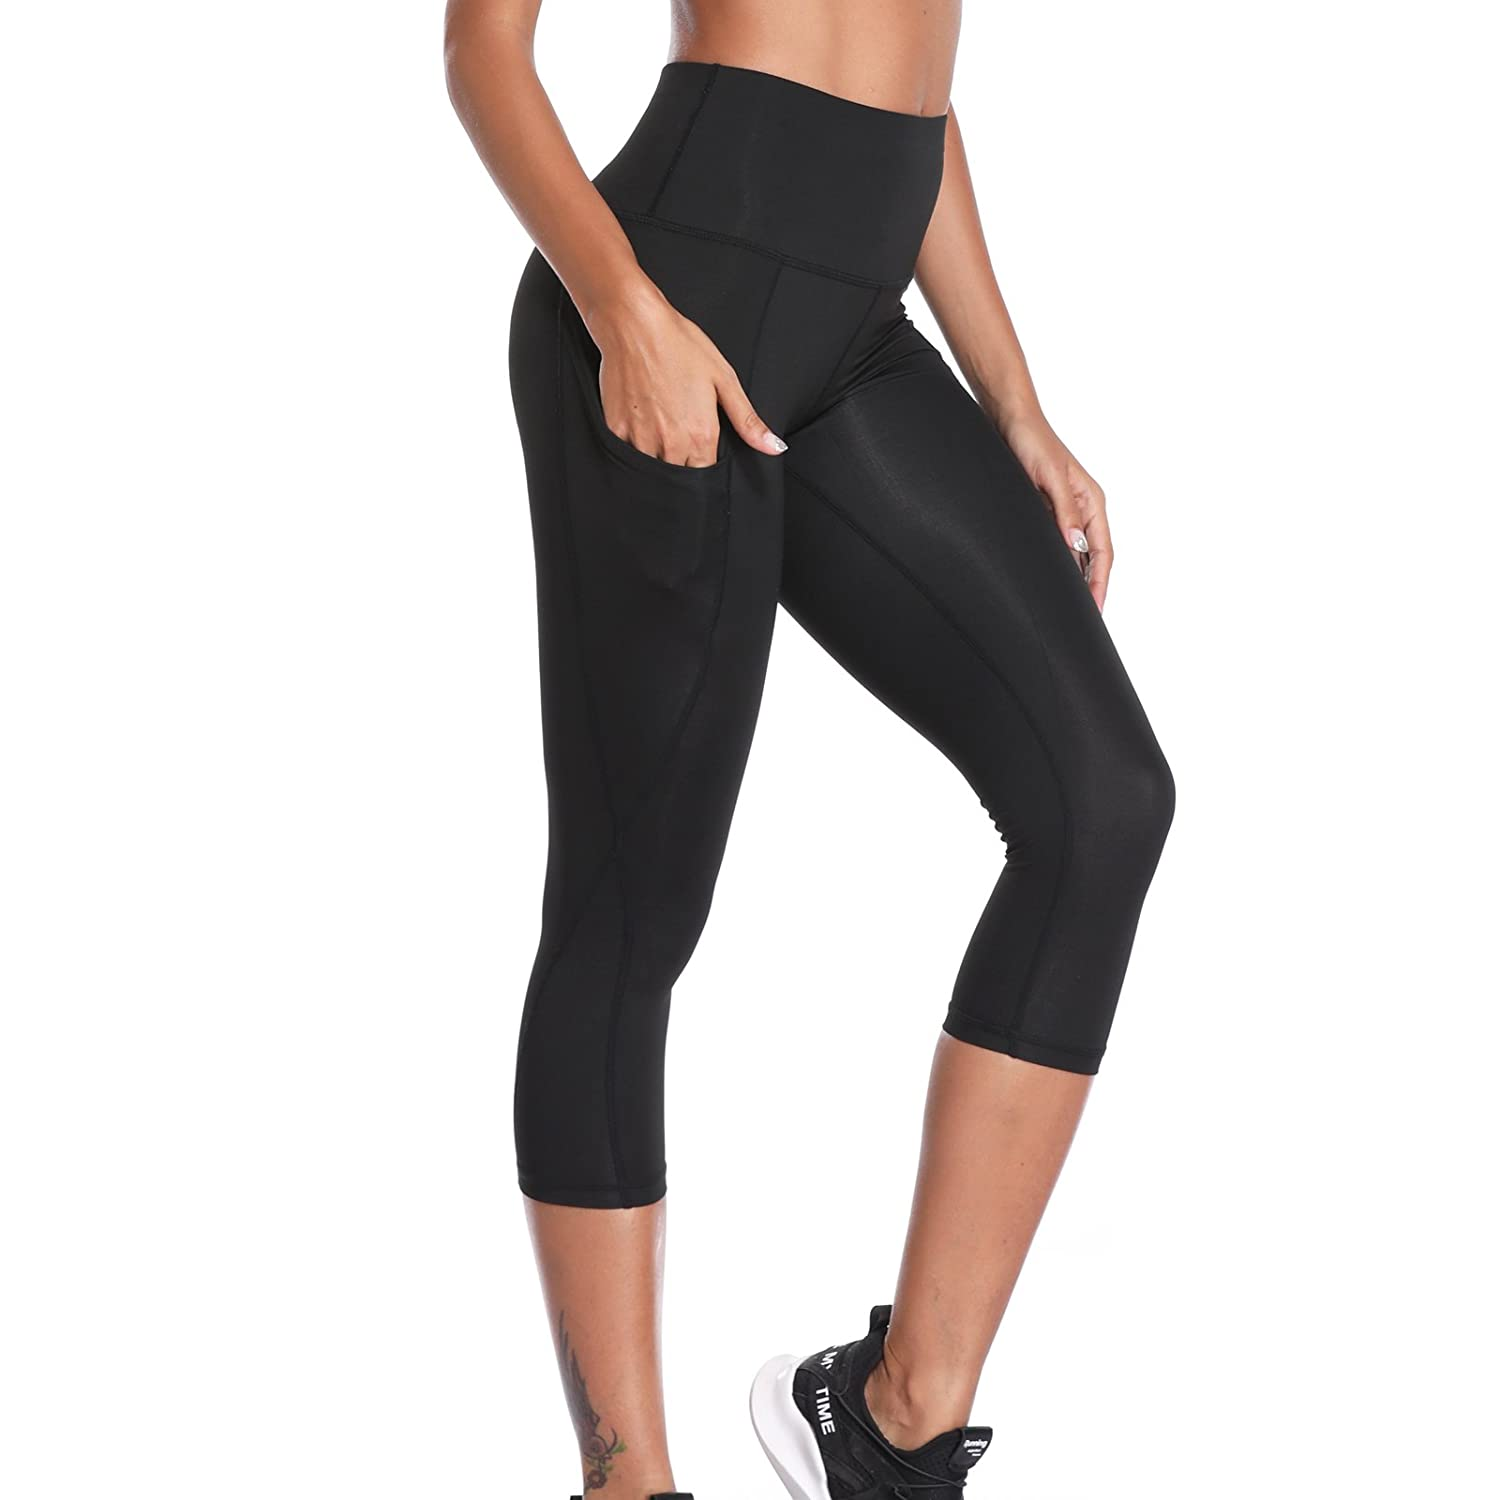 Joyshaper 3/4 Length Leggings with Pockets Women Black Cropped Capri Tights Slimming Yoga Pants High Waist Tummy Control Gym Workout Running 4 Way Stretch